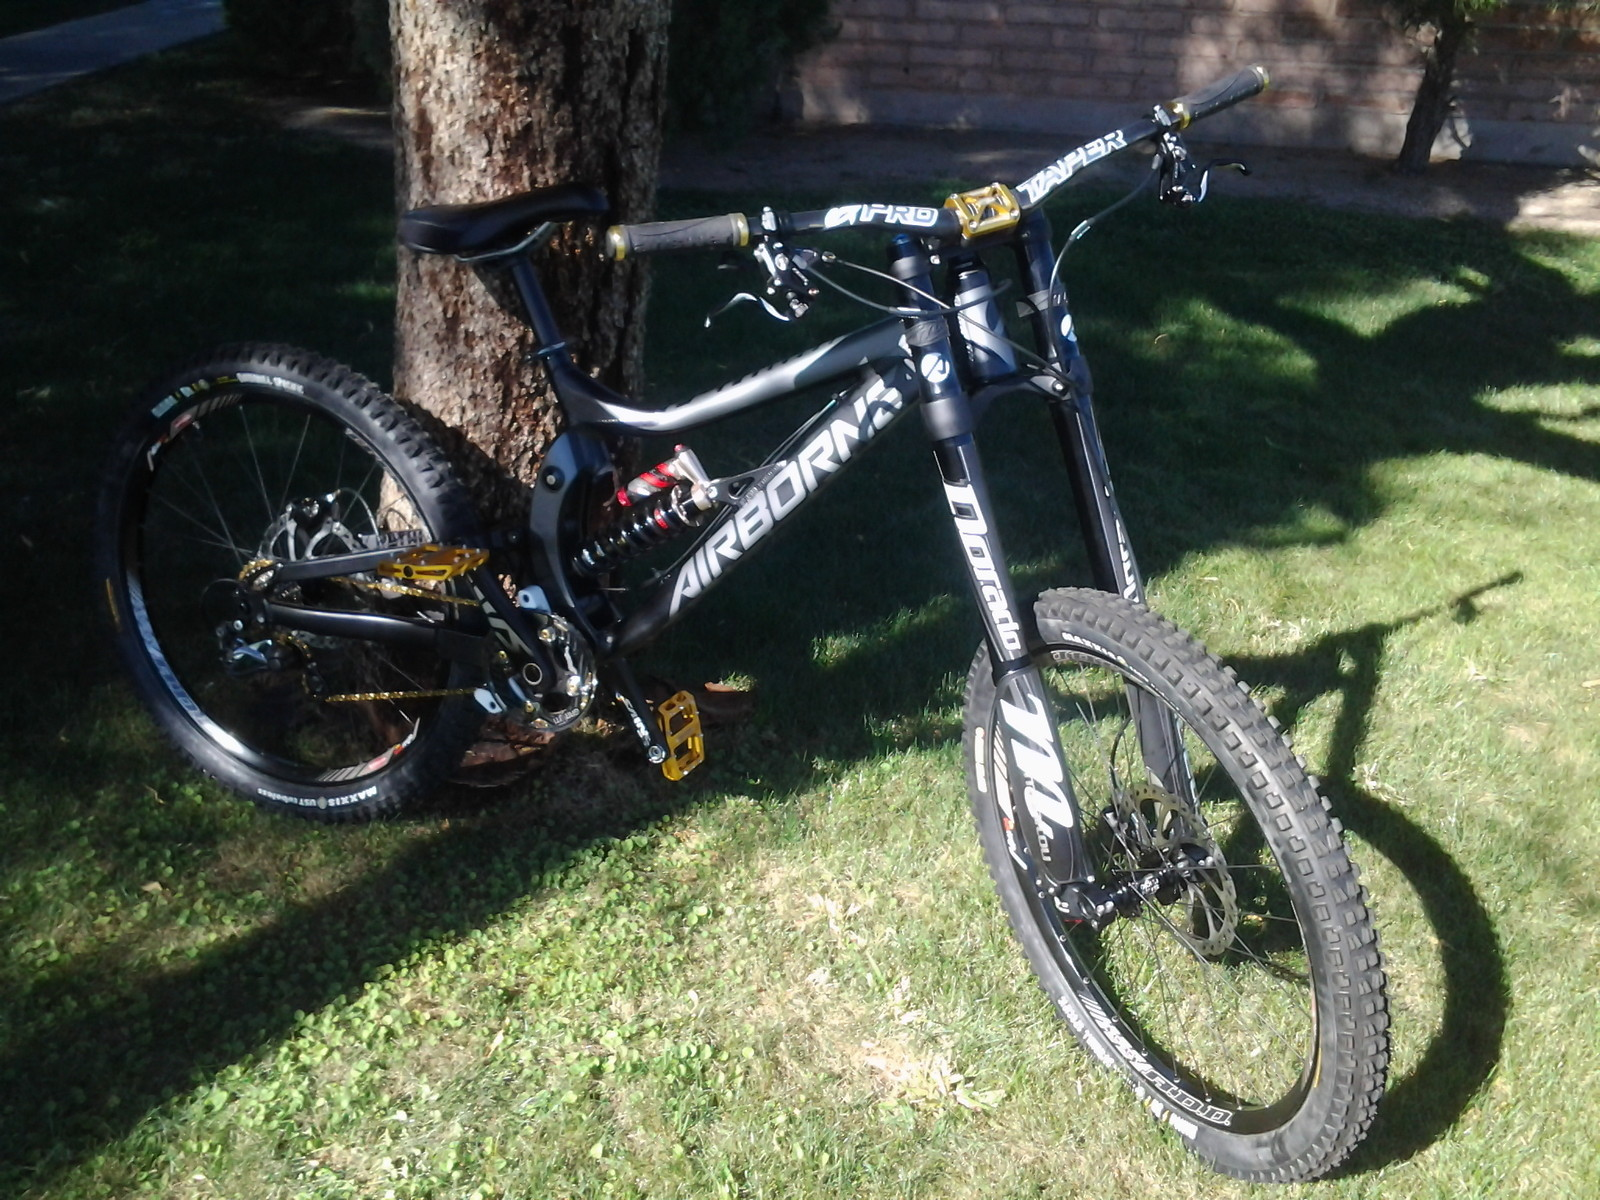 Airborne Bicycles Pathogen Hayesed Custom Build - JordanJoker10 - Mountain Biking Pictures - Vital MTB